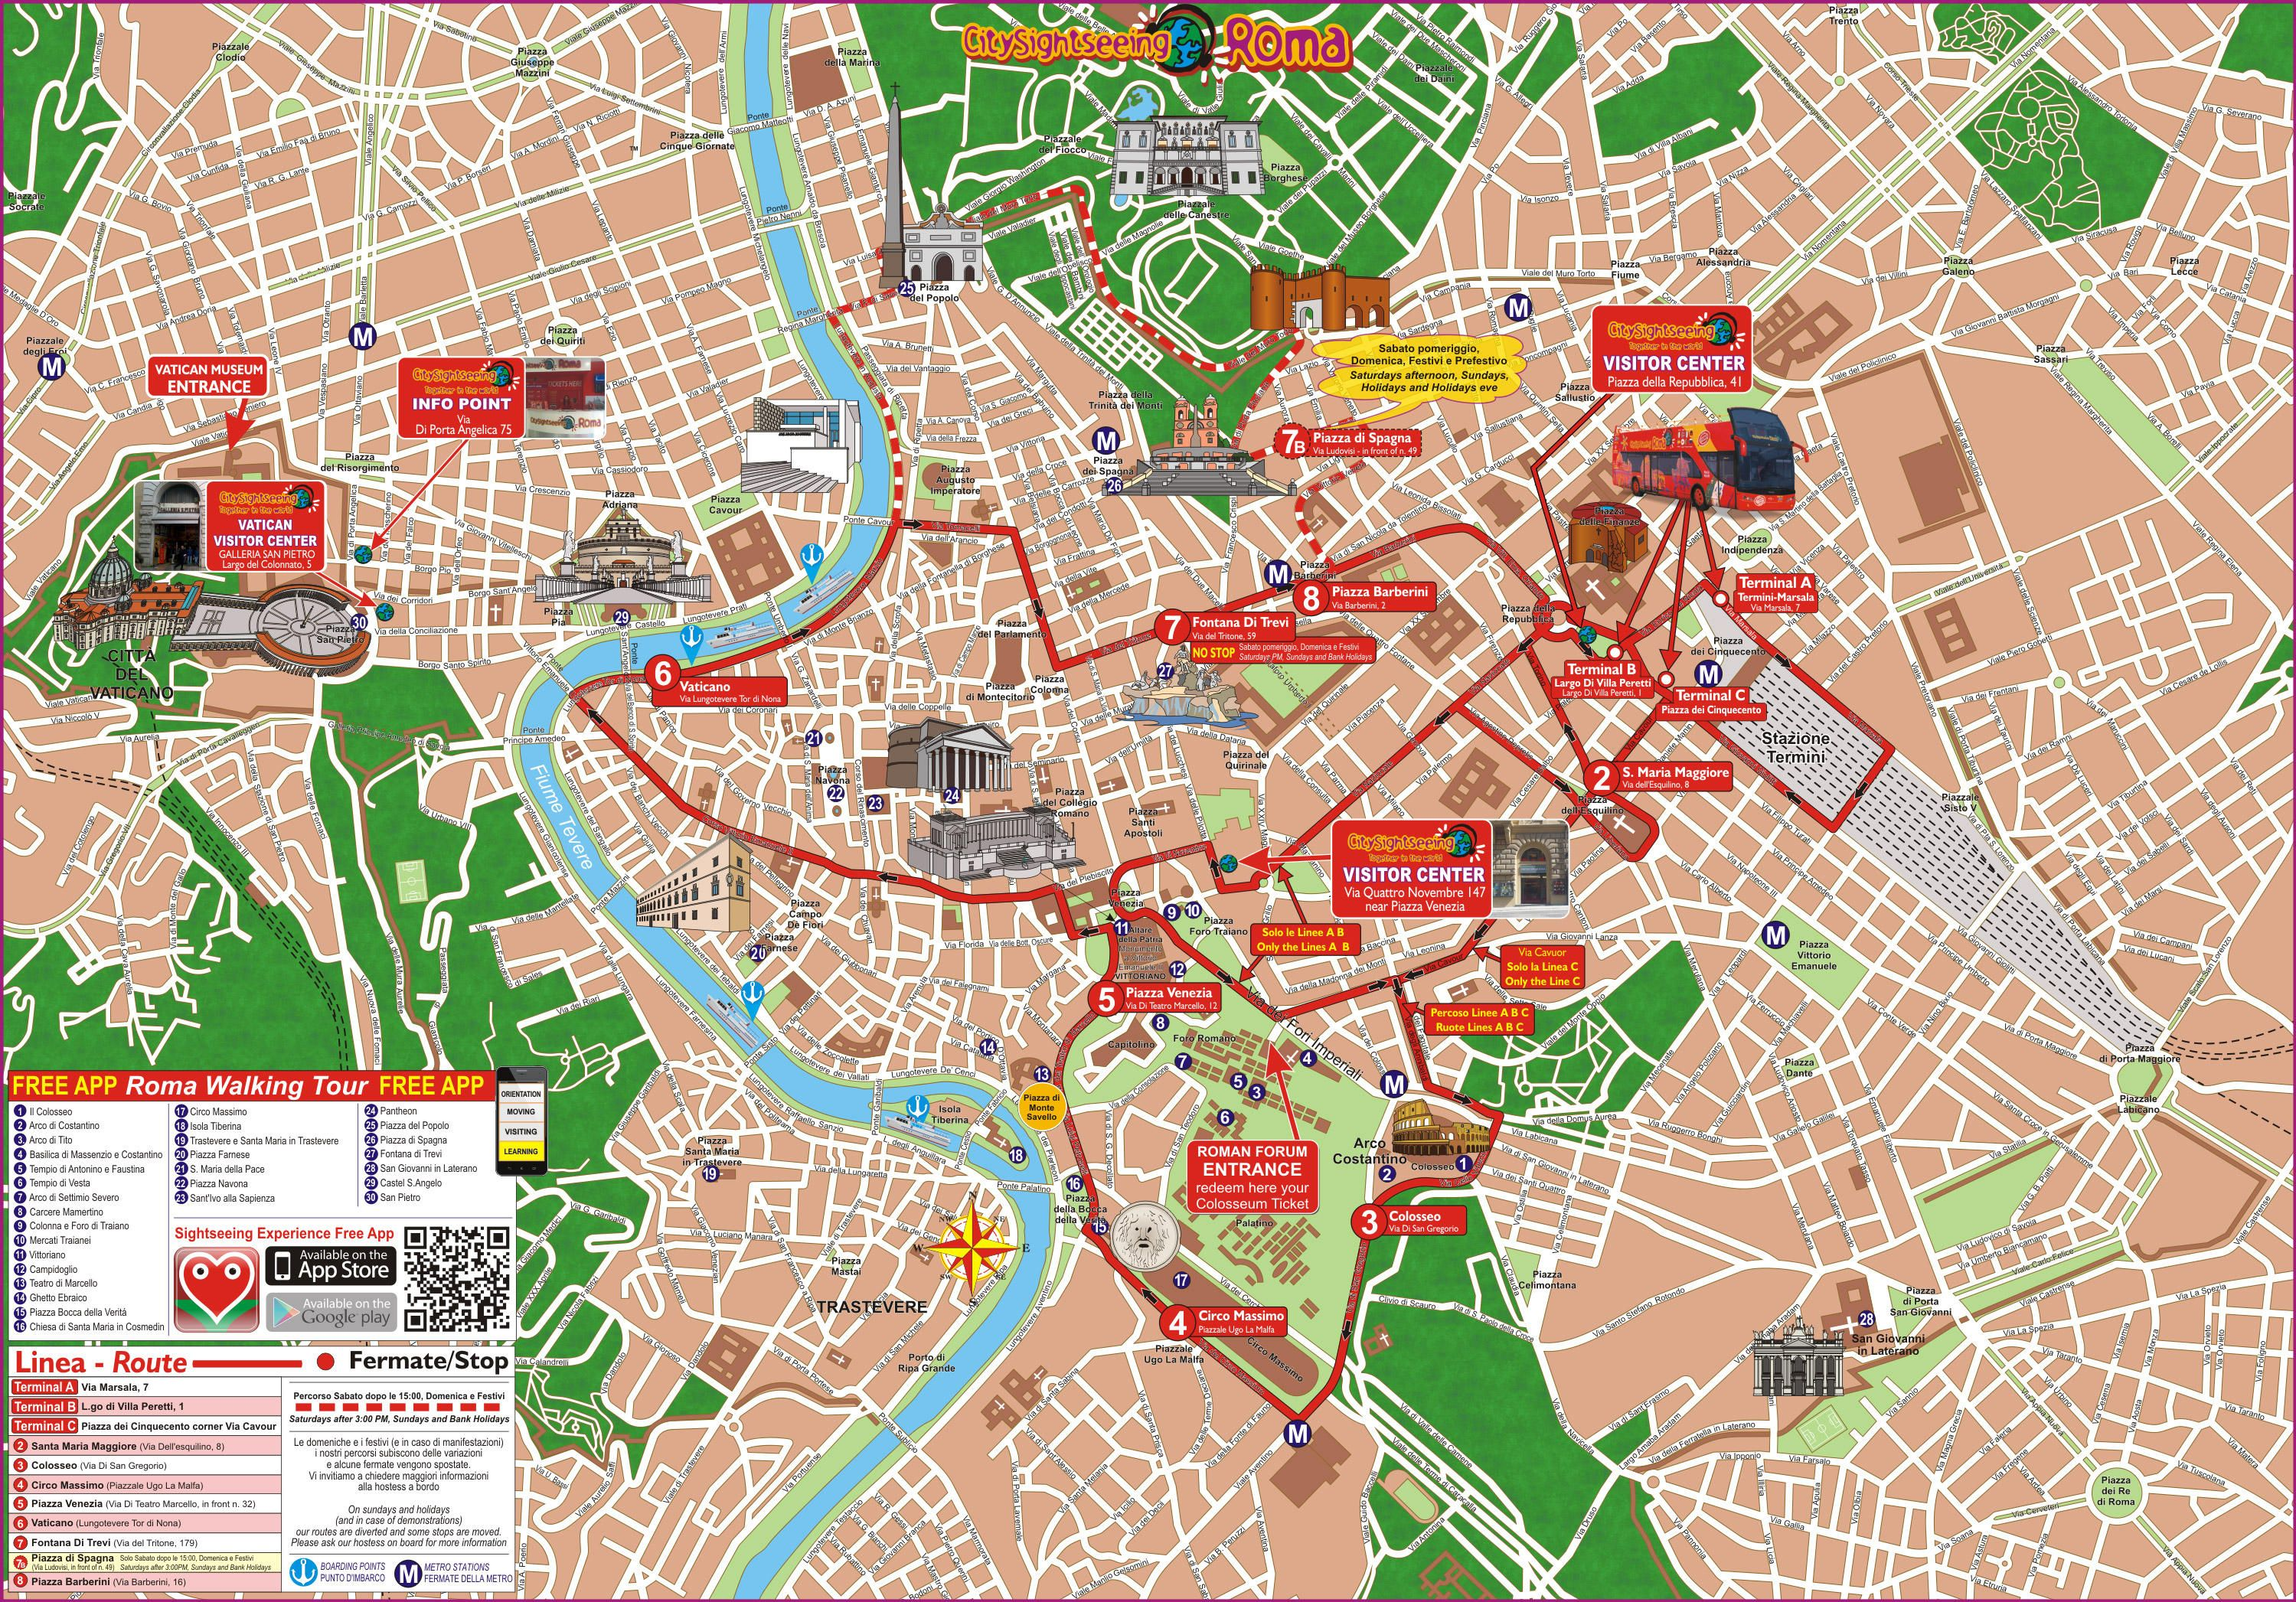 Viator Rome Hop On Off Sightseeing Tour In Italy